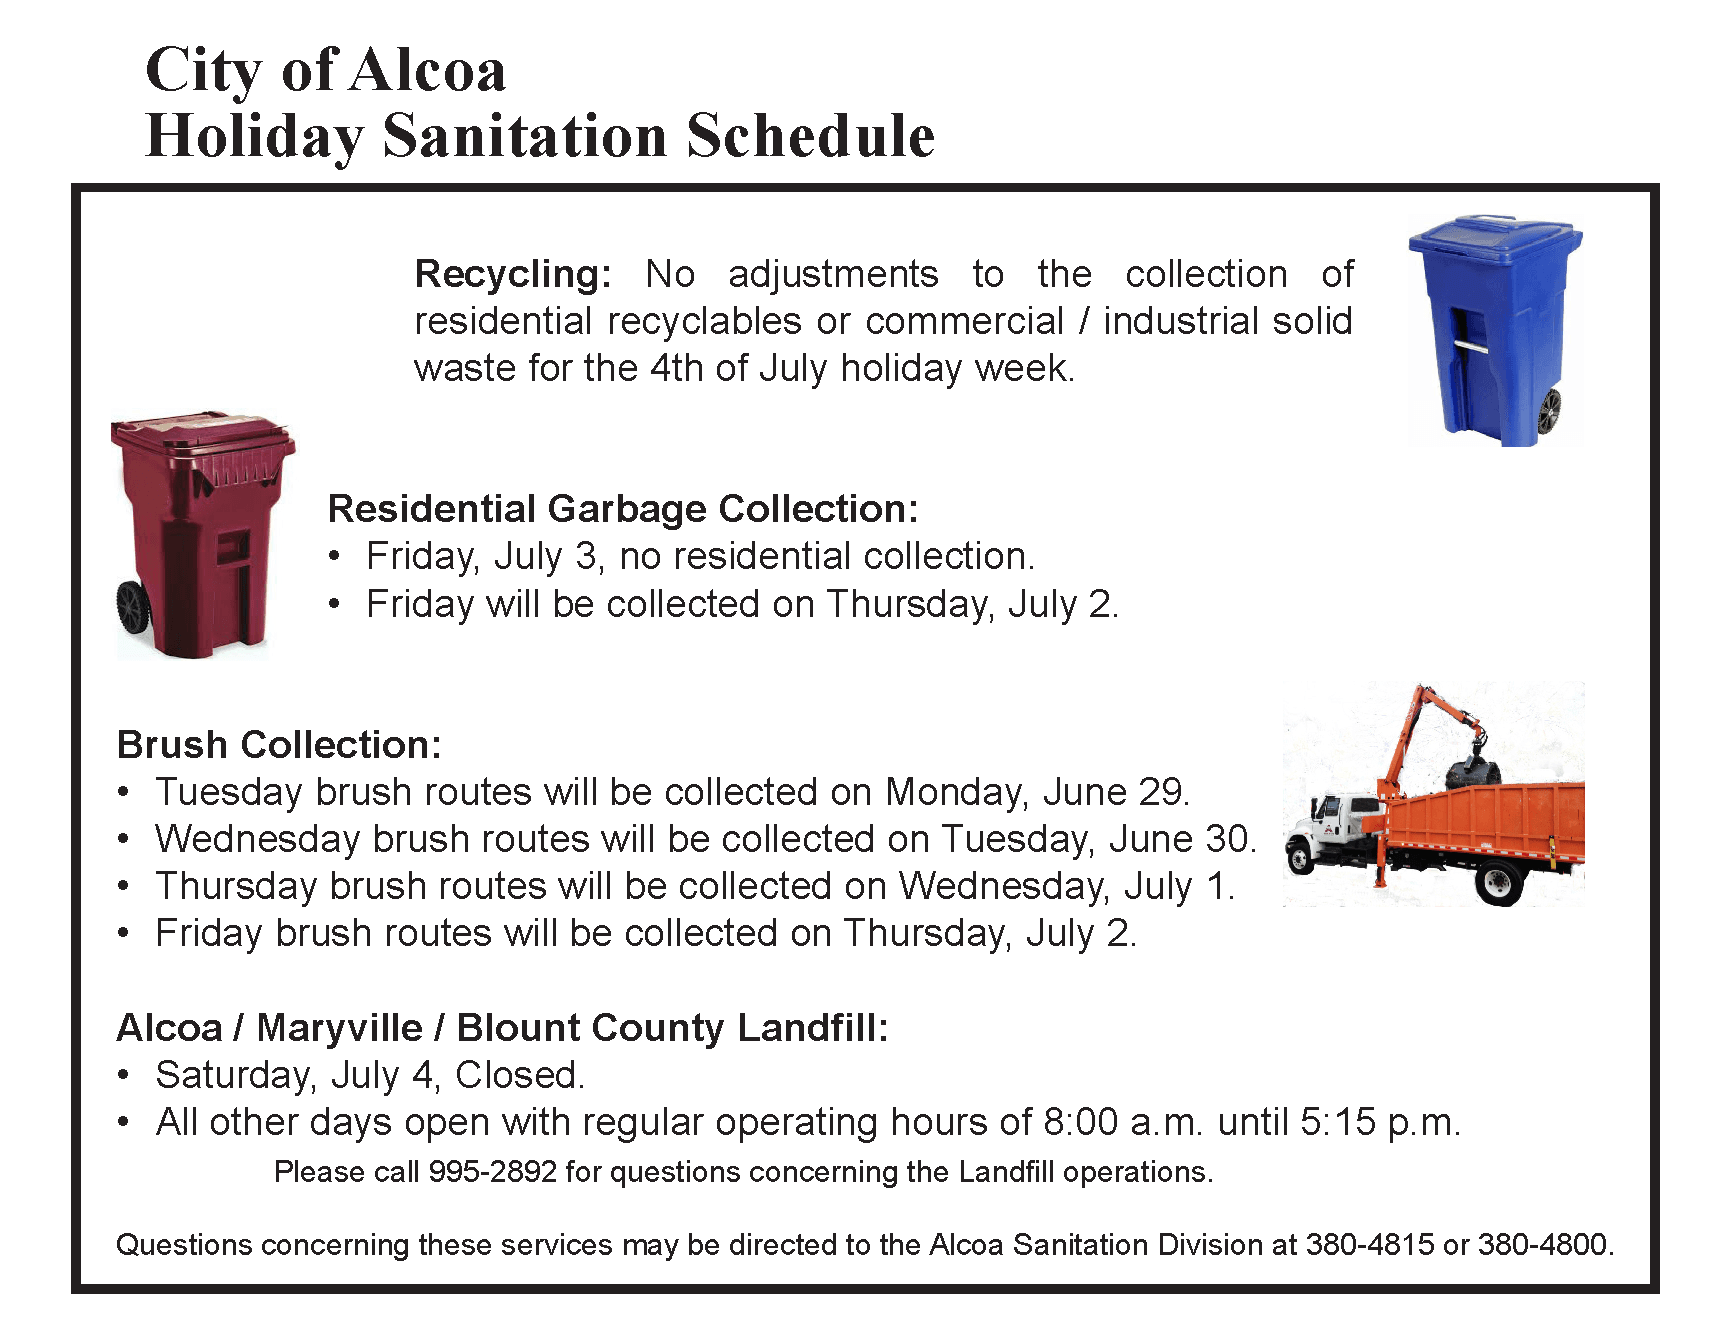 Holiday Sanitation Schedule